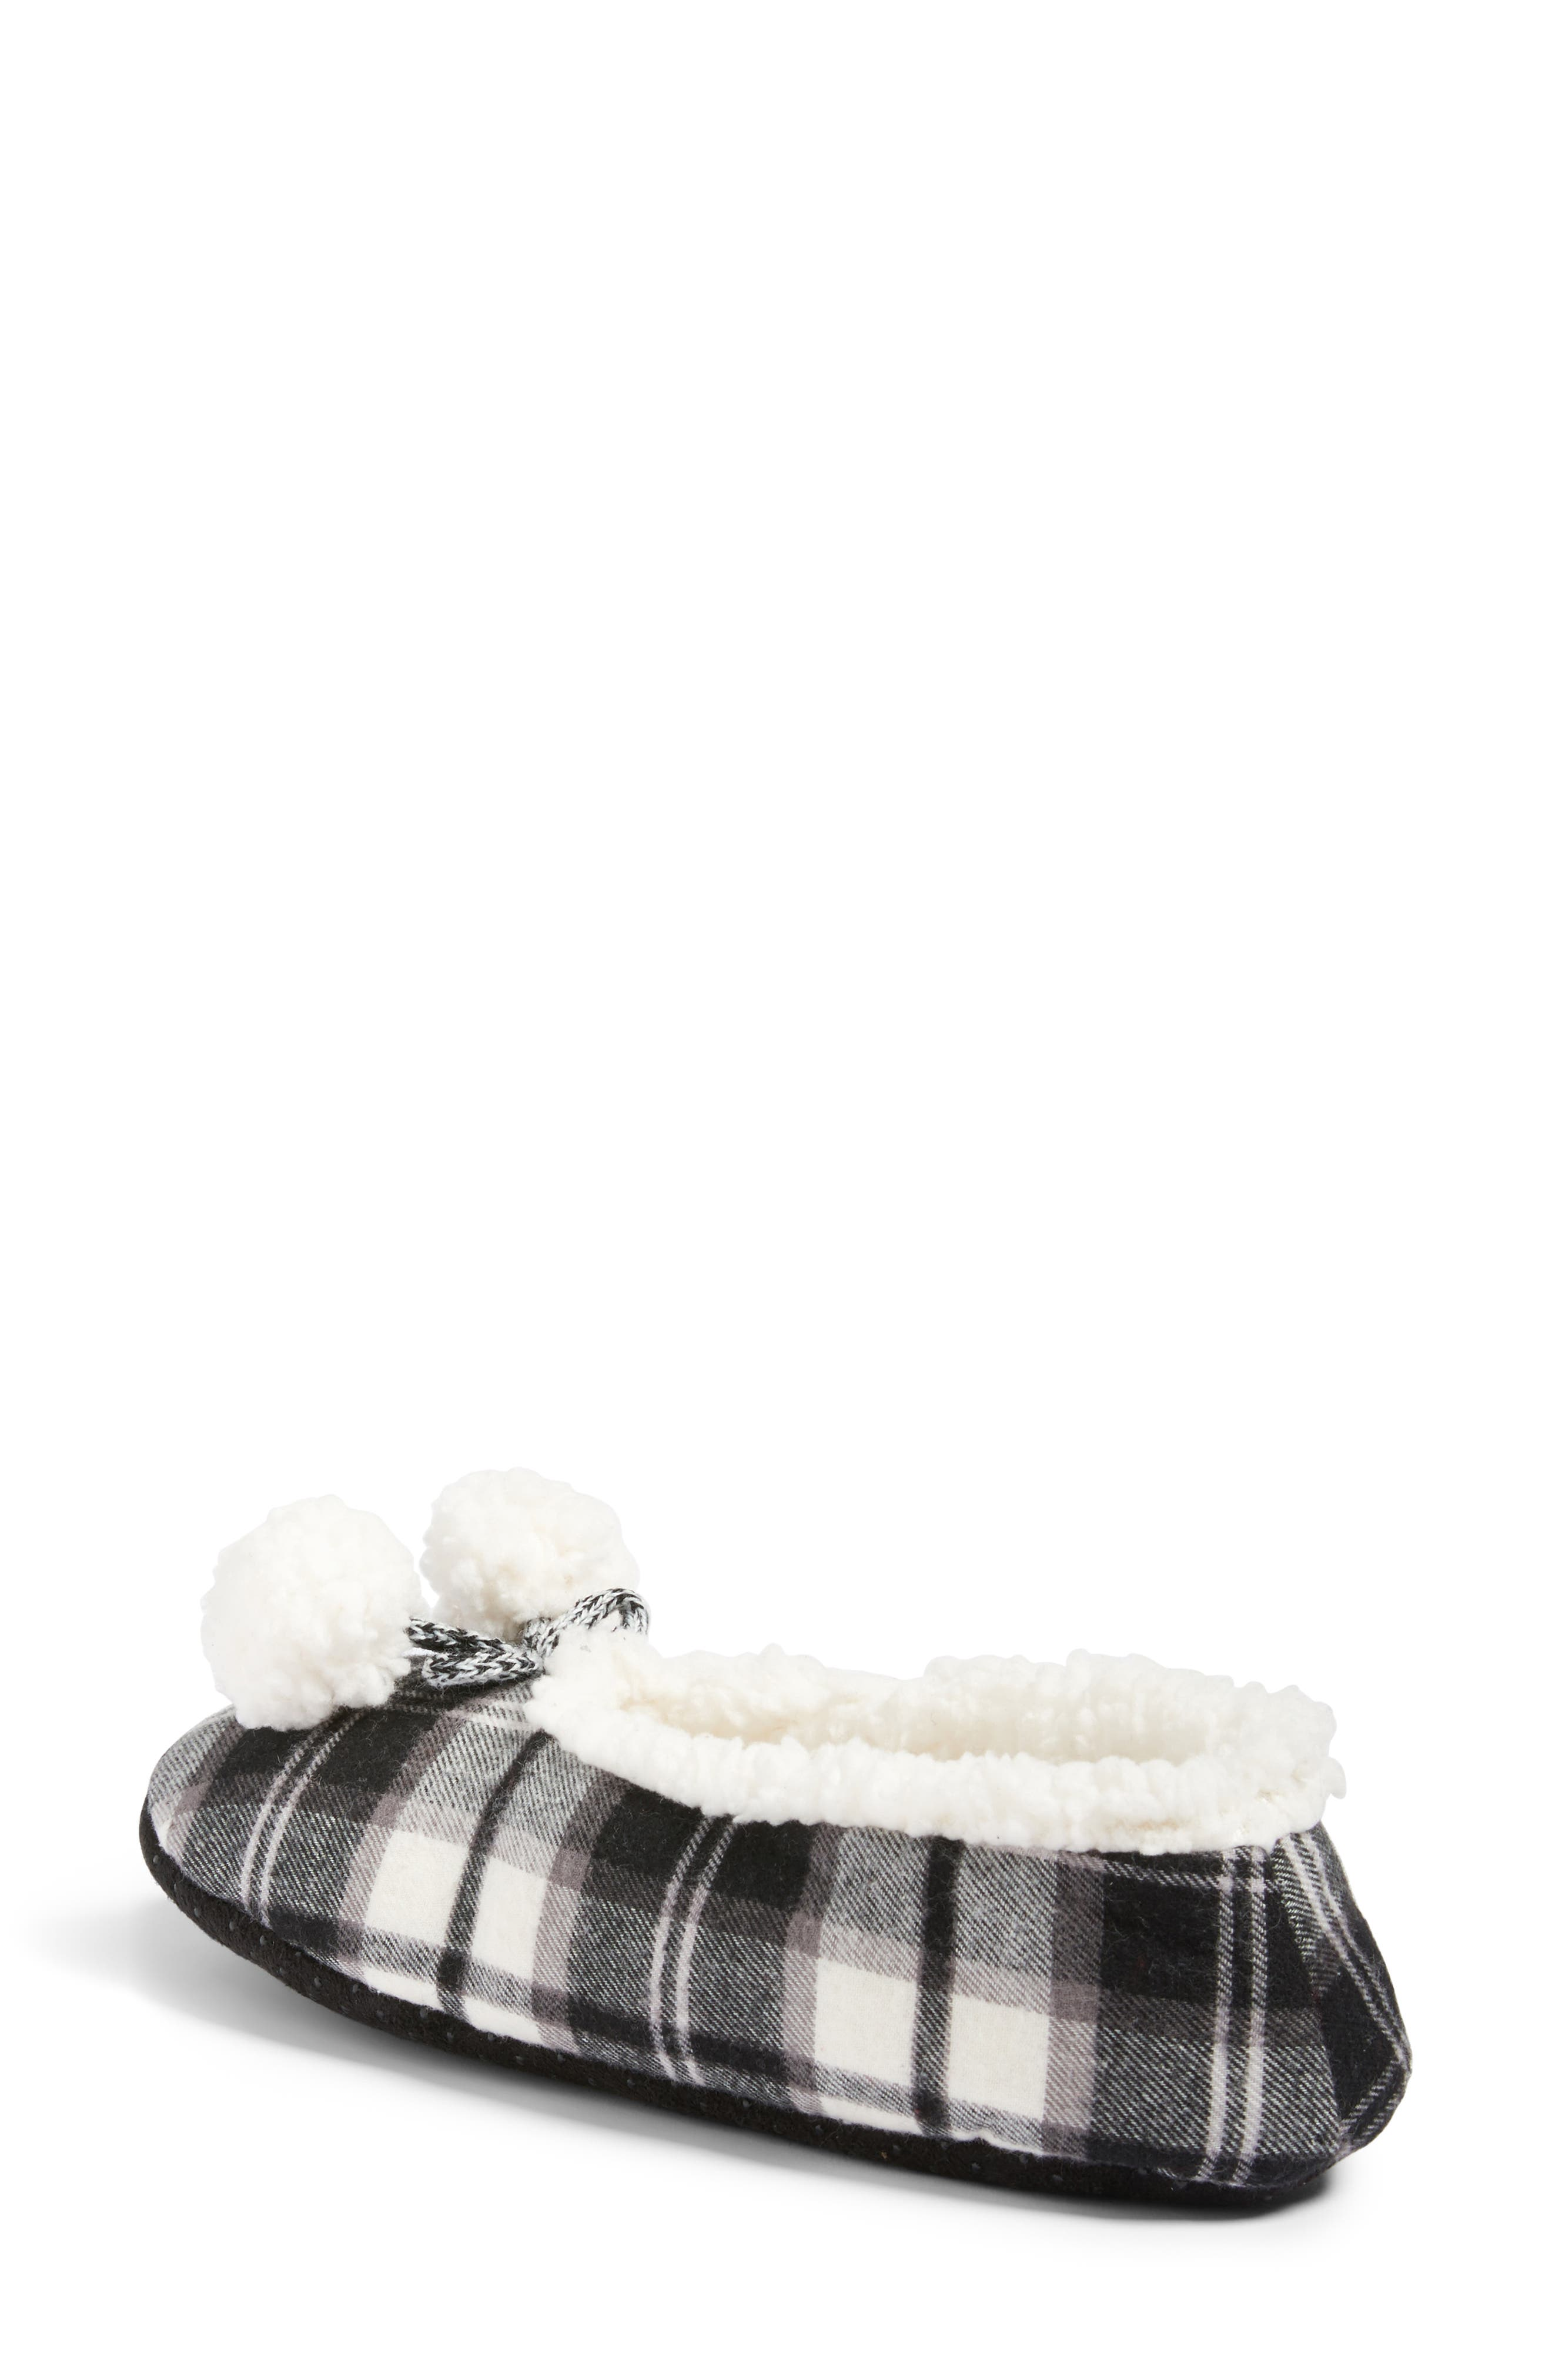 Plaid Slippers,                             Alternate thumbnail 2, color,                             002